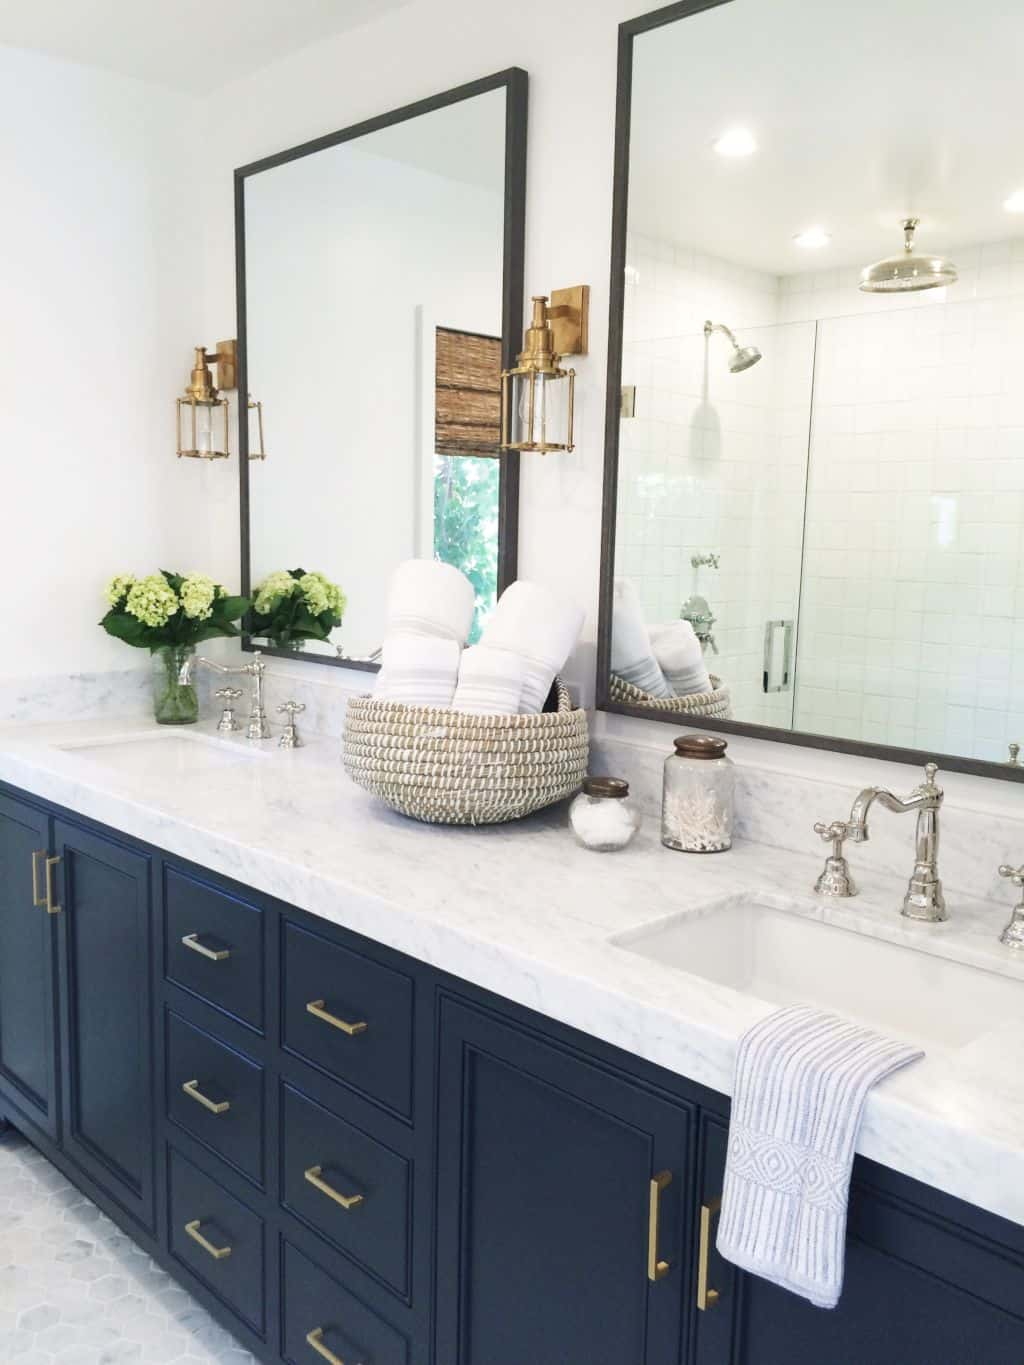 19 Double Vanity Bathrooms That Will Make Your Lives Easier ...